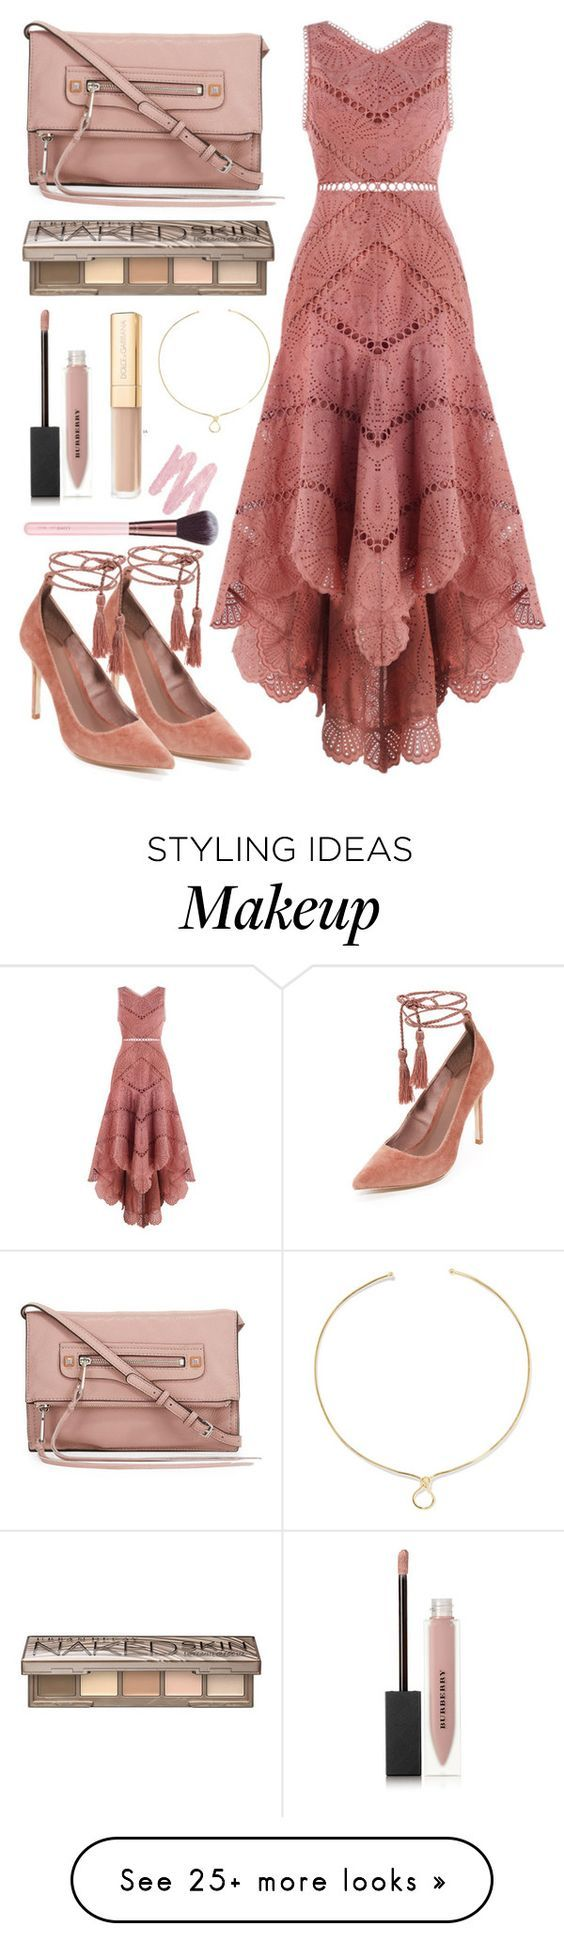 """"" by fanfanfanfannnn on Polyvore featuring Joie, Rebecca Minkoff, Zimmermann, Noir Jewelry, Urban Decay, Burberry and Luxie"